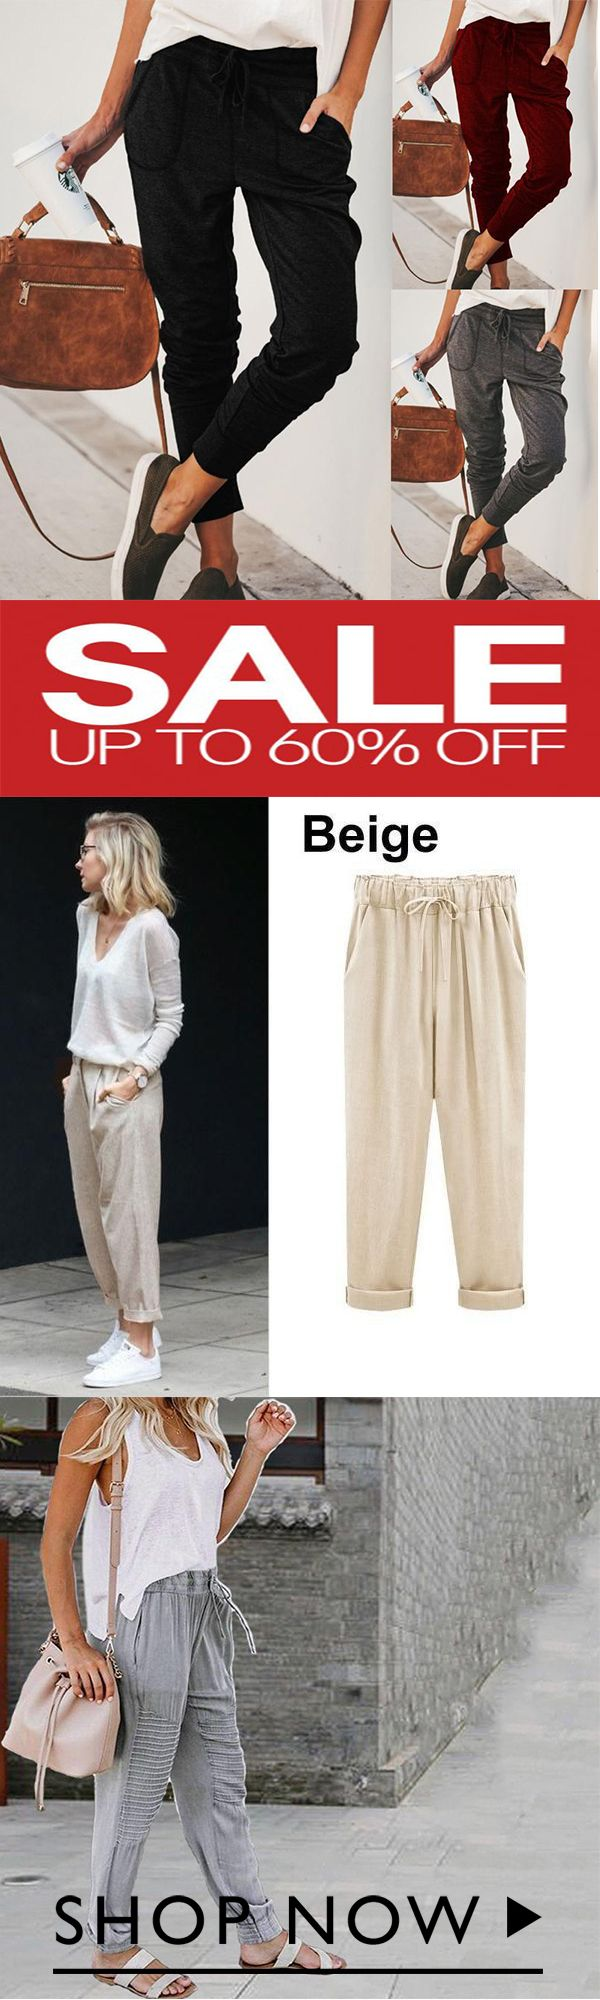 Photo of Pantaloni cropped in cotone taglie forti da donna